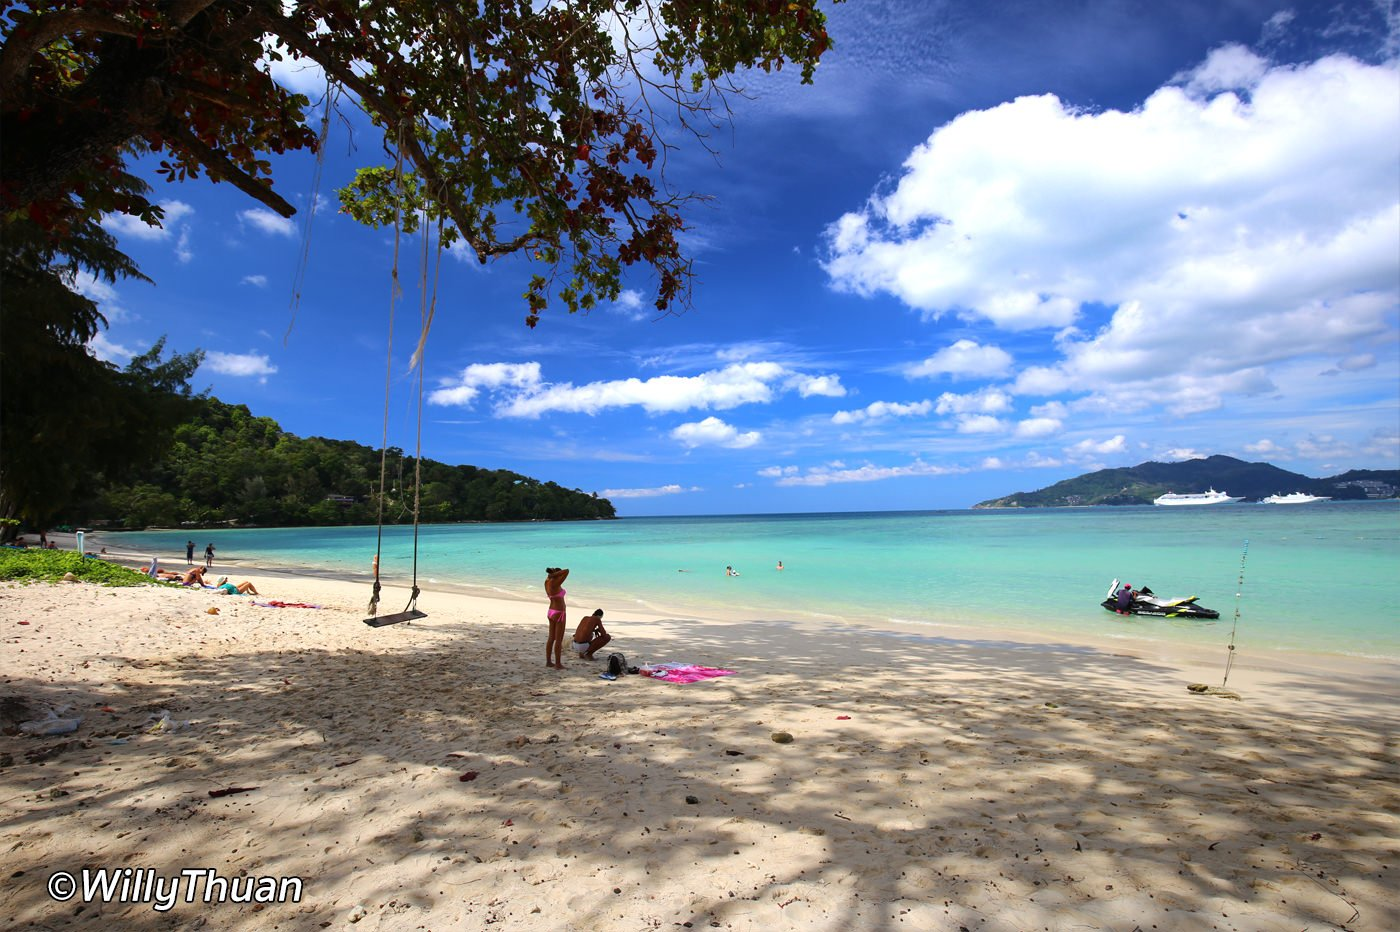 Tri Trang Beach (Emerald Beach or Crystal Beach)